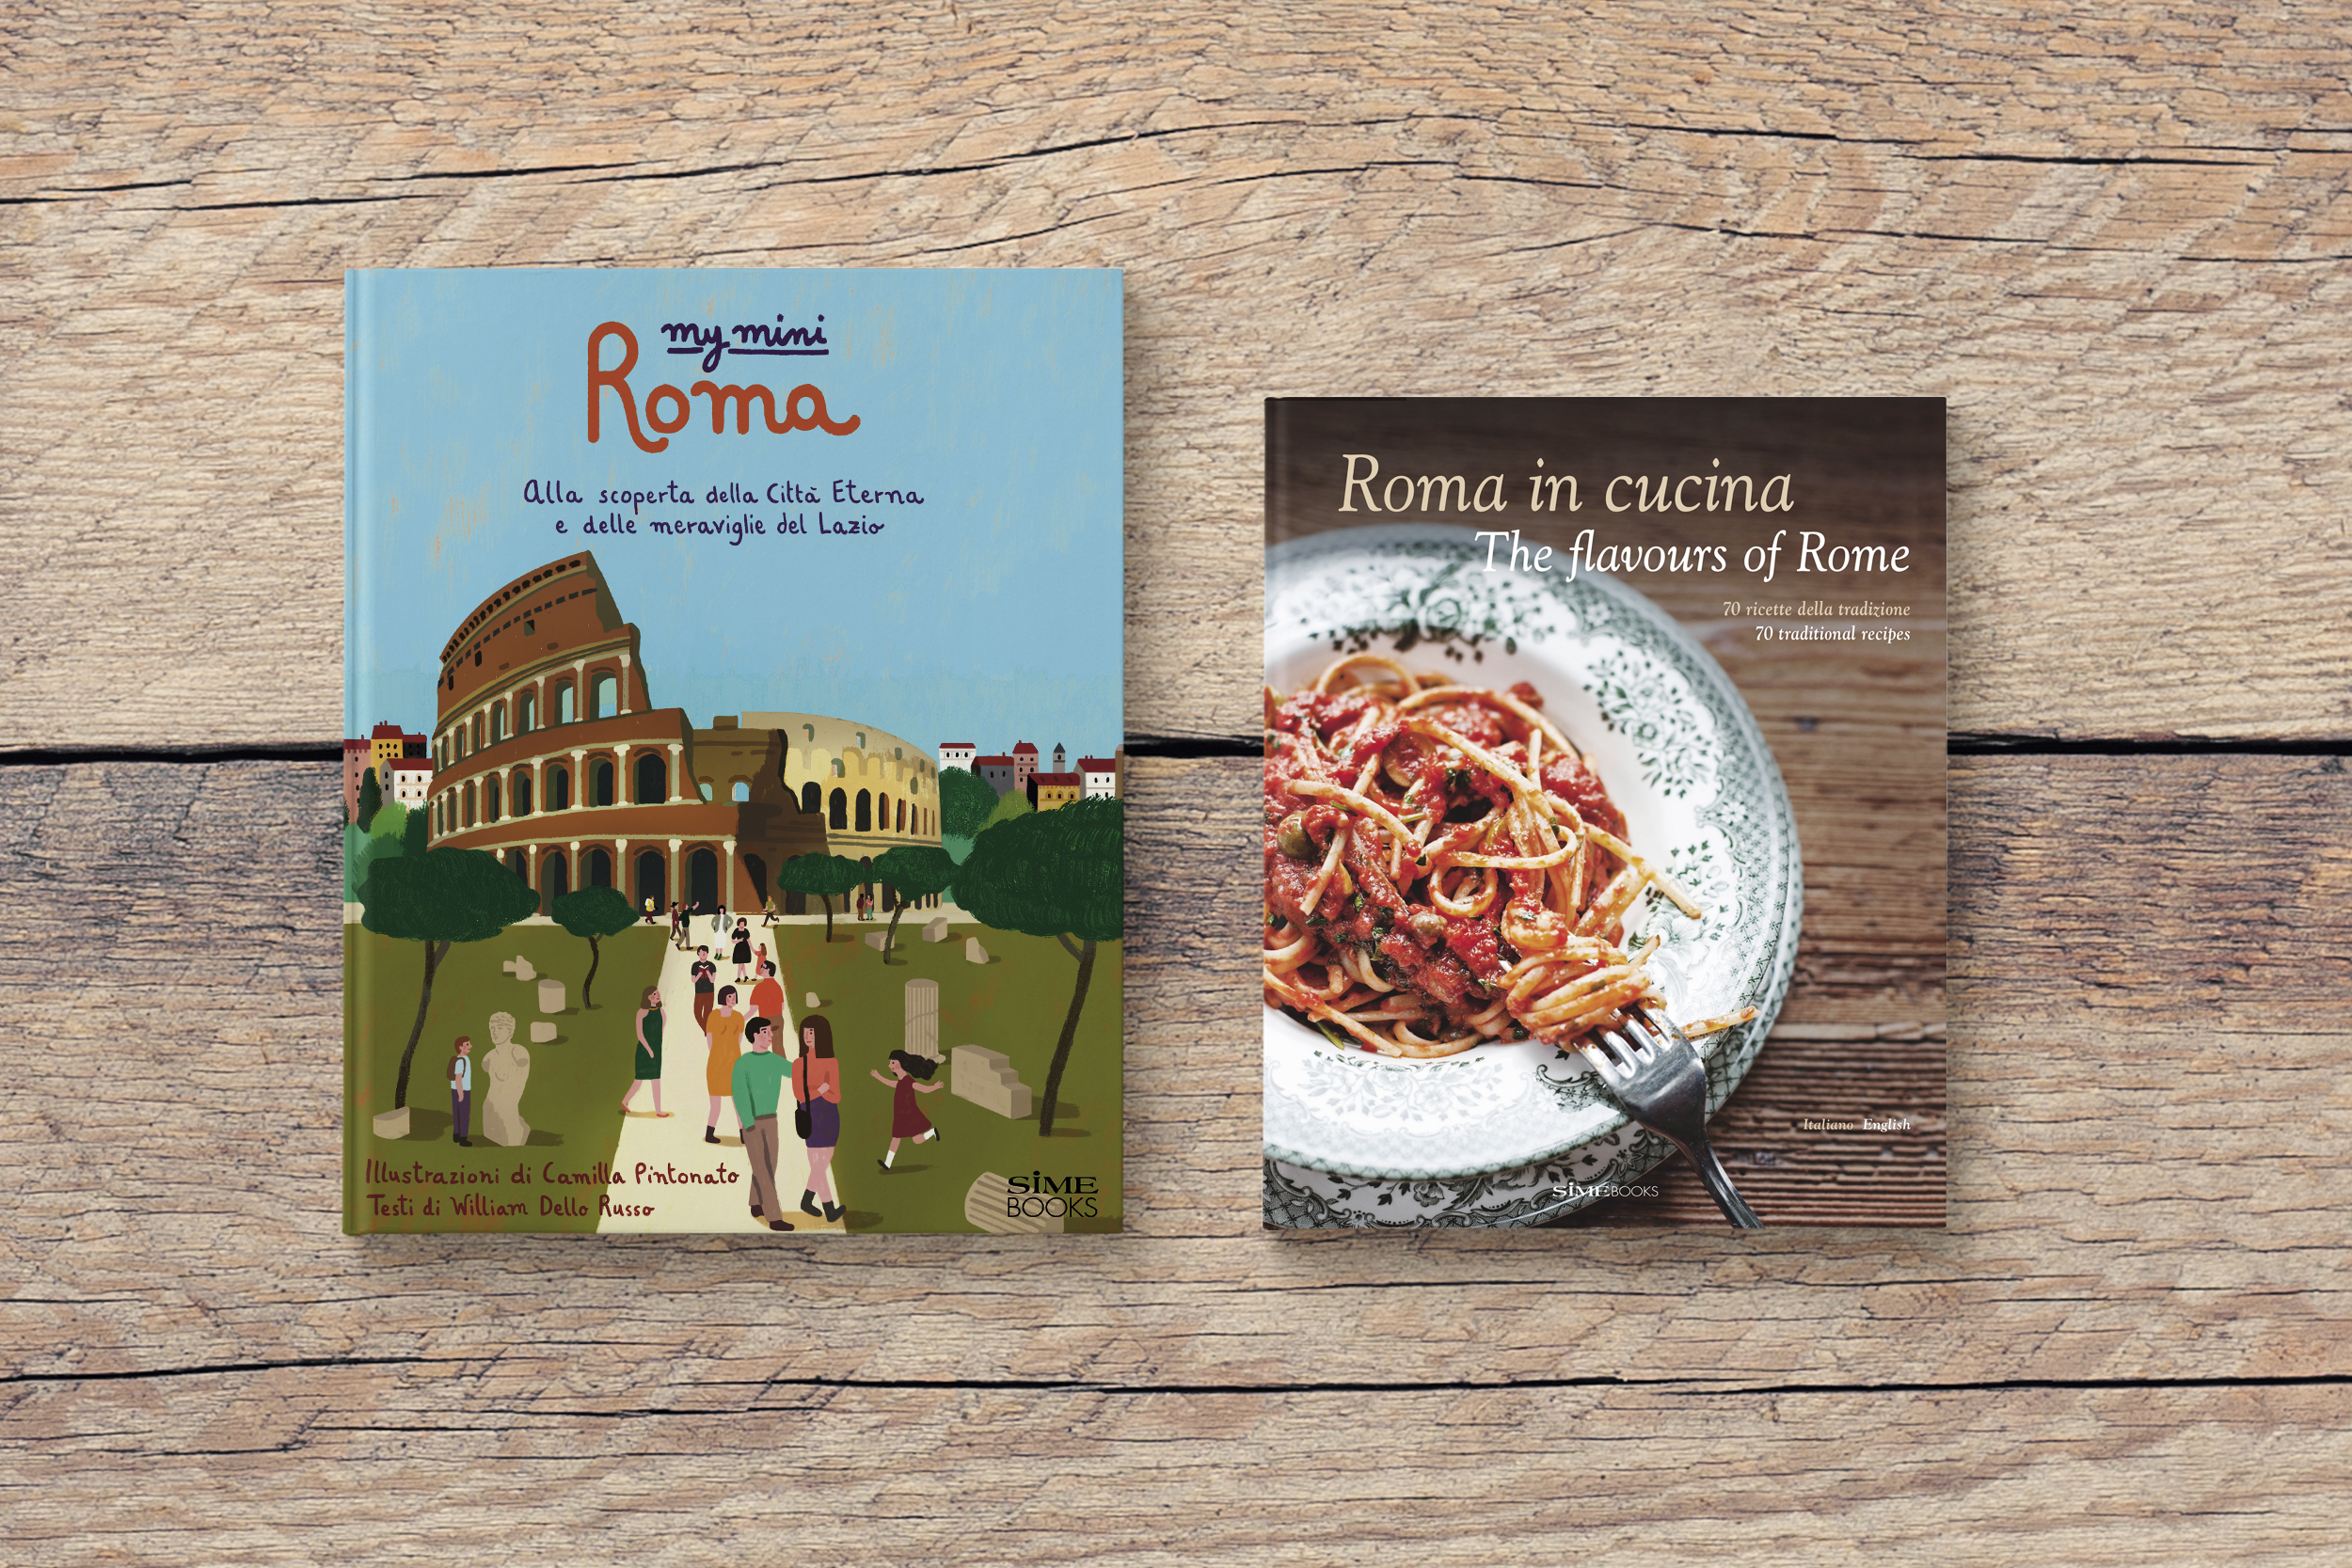 PROMOZIONE ITALY > Rome Learn about regions of Italy with SimeBooks